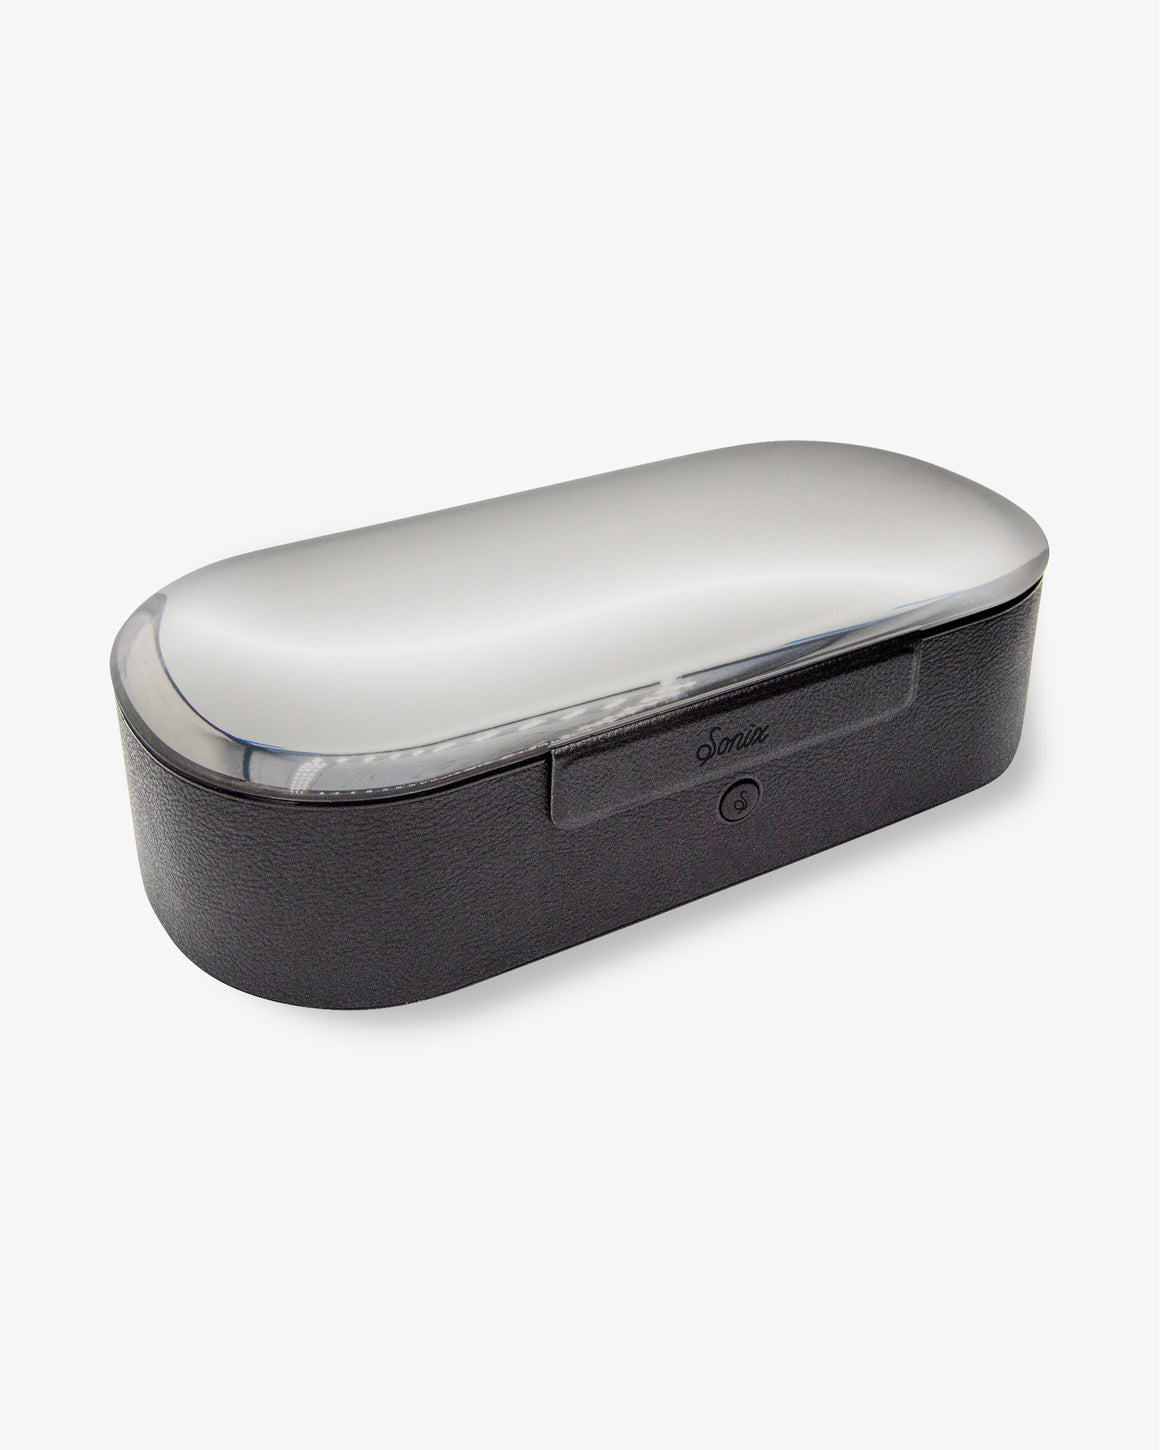 Beyond UV+O3 Sanitizing Box- Gunmetal